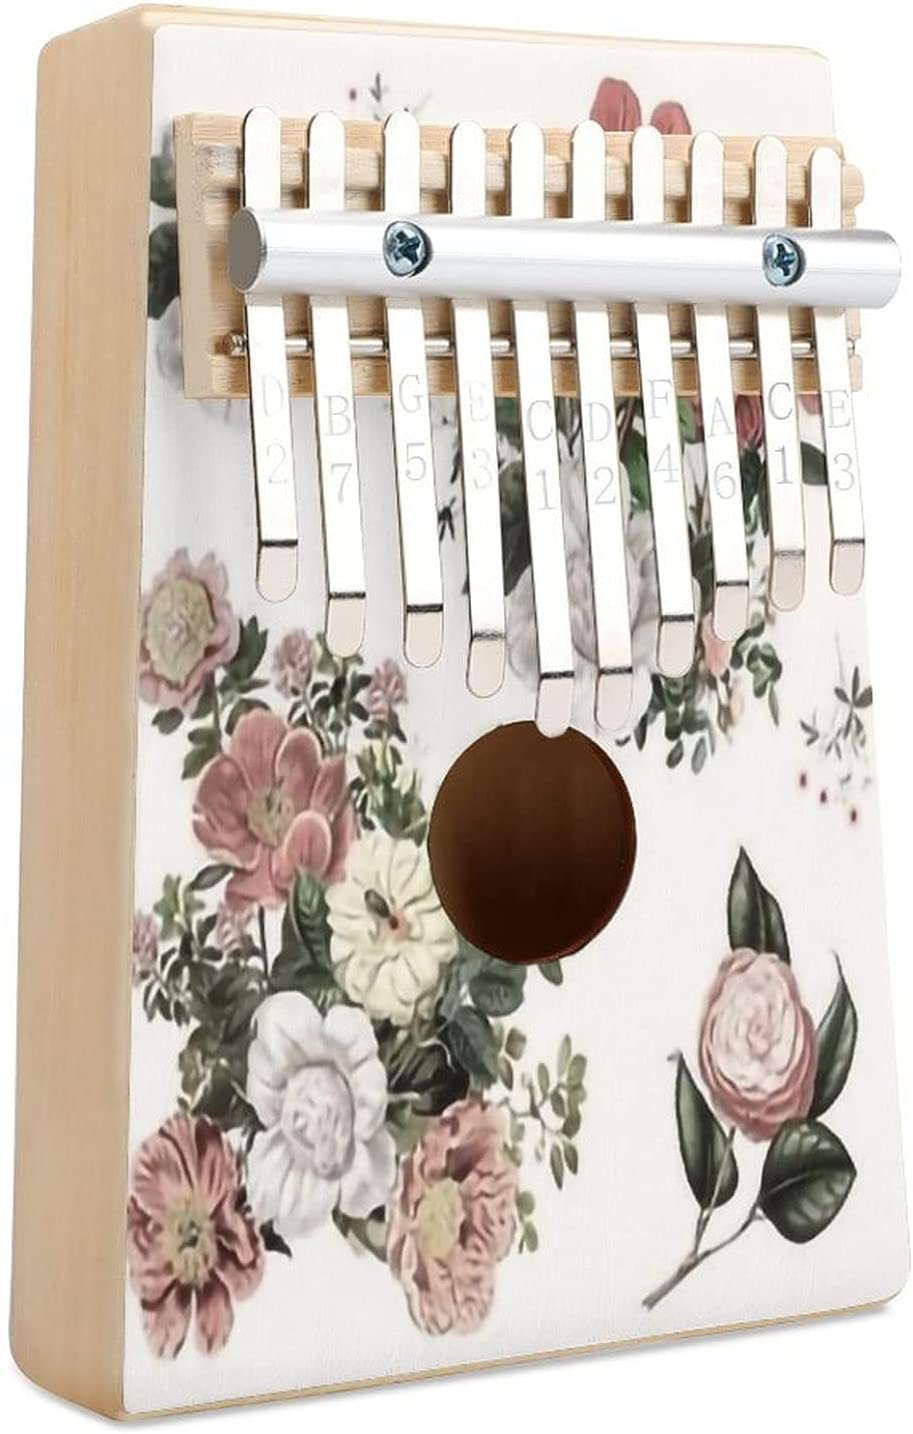 8 Heirloom Florals White Limited Special Price Kalimba Finger Key 10 Thumb Financial sales sale Piano